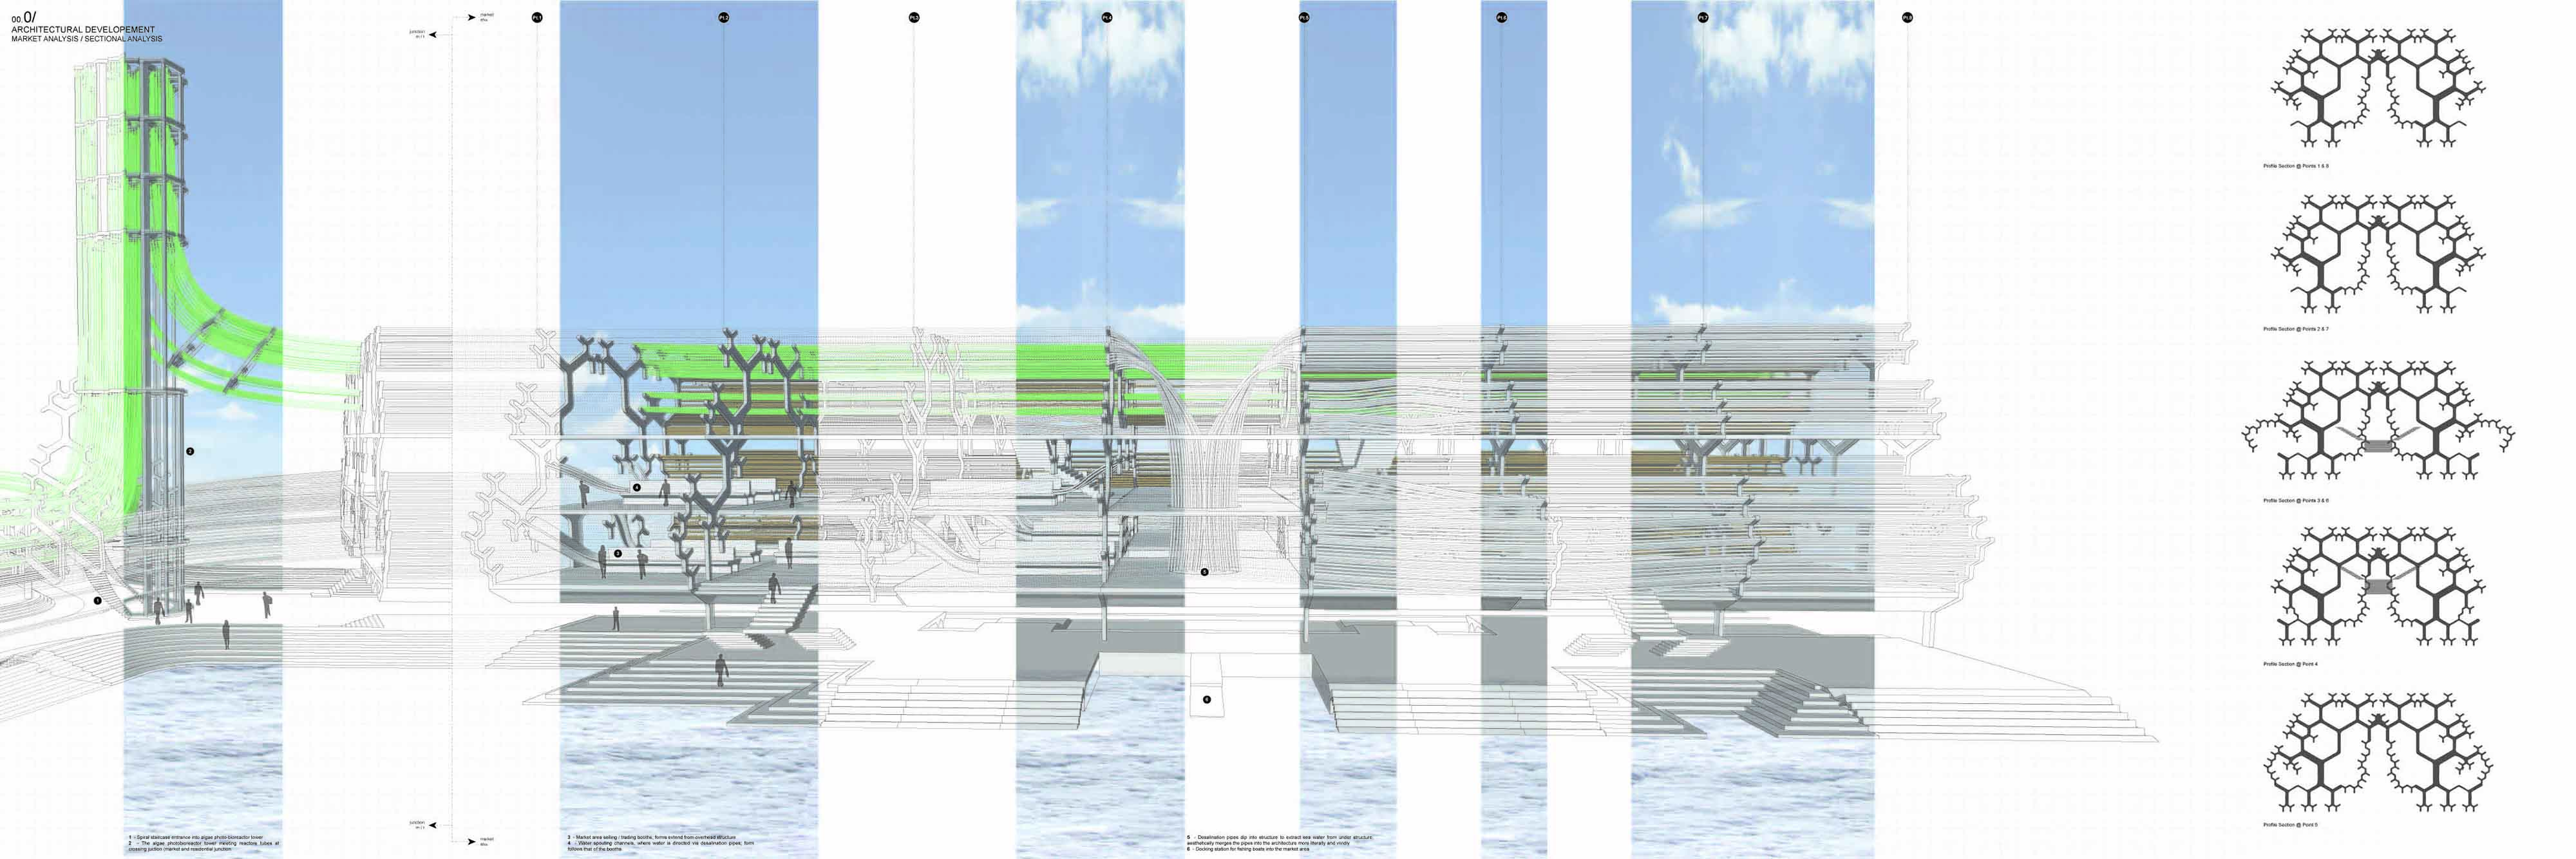 aa school of architecture projects review diploma   a drawing that highlights the market architecture from its side profile further highlighted is the